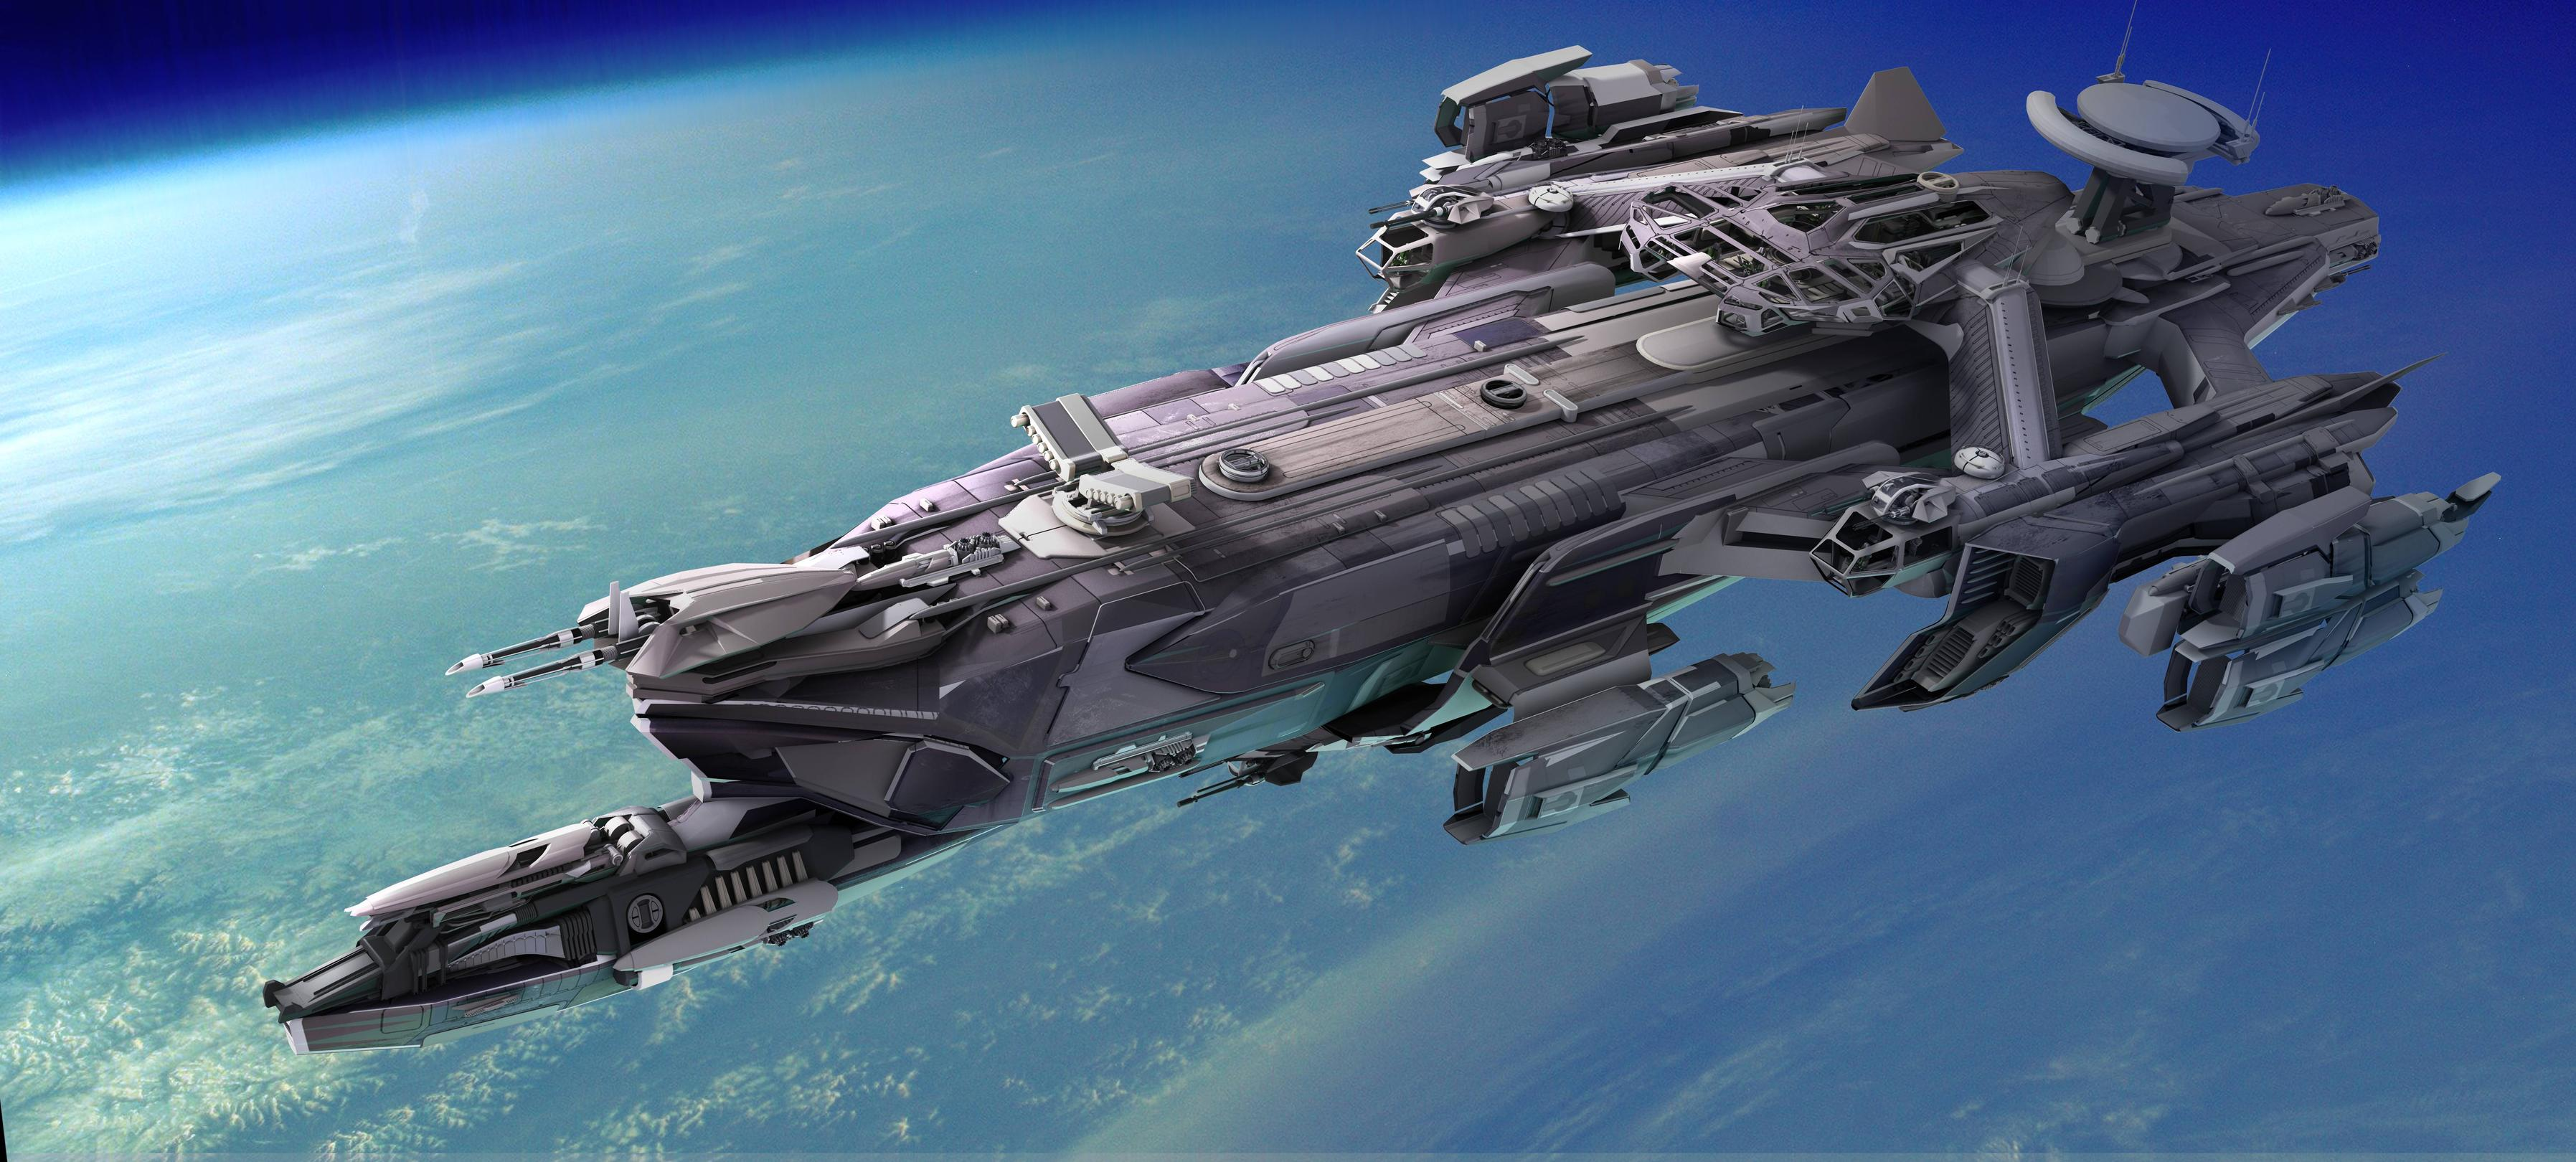 Spaceship High Quality Background on Wallpapers Vista